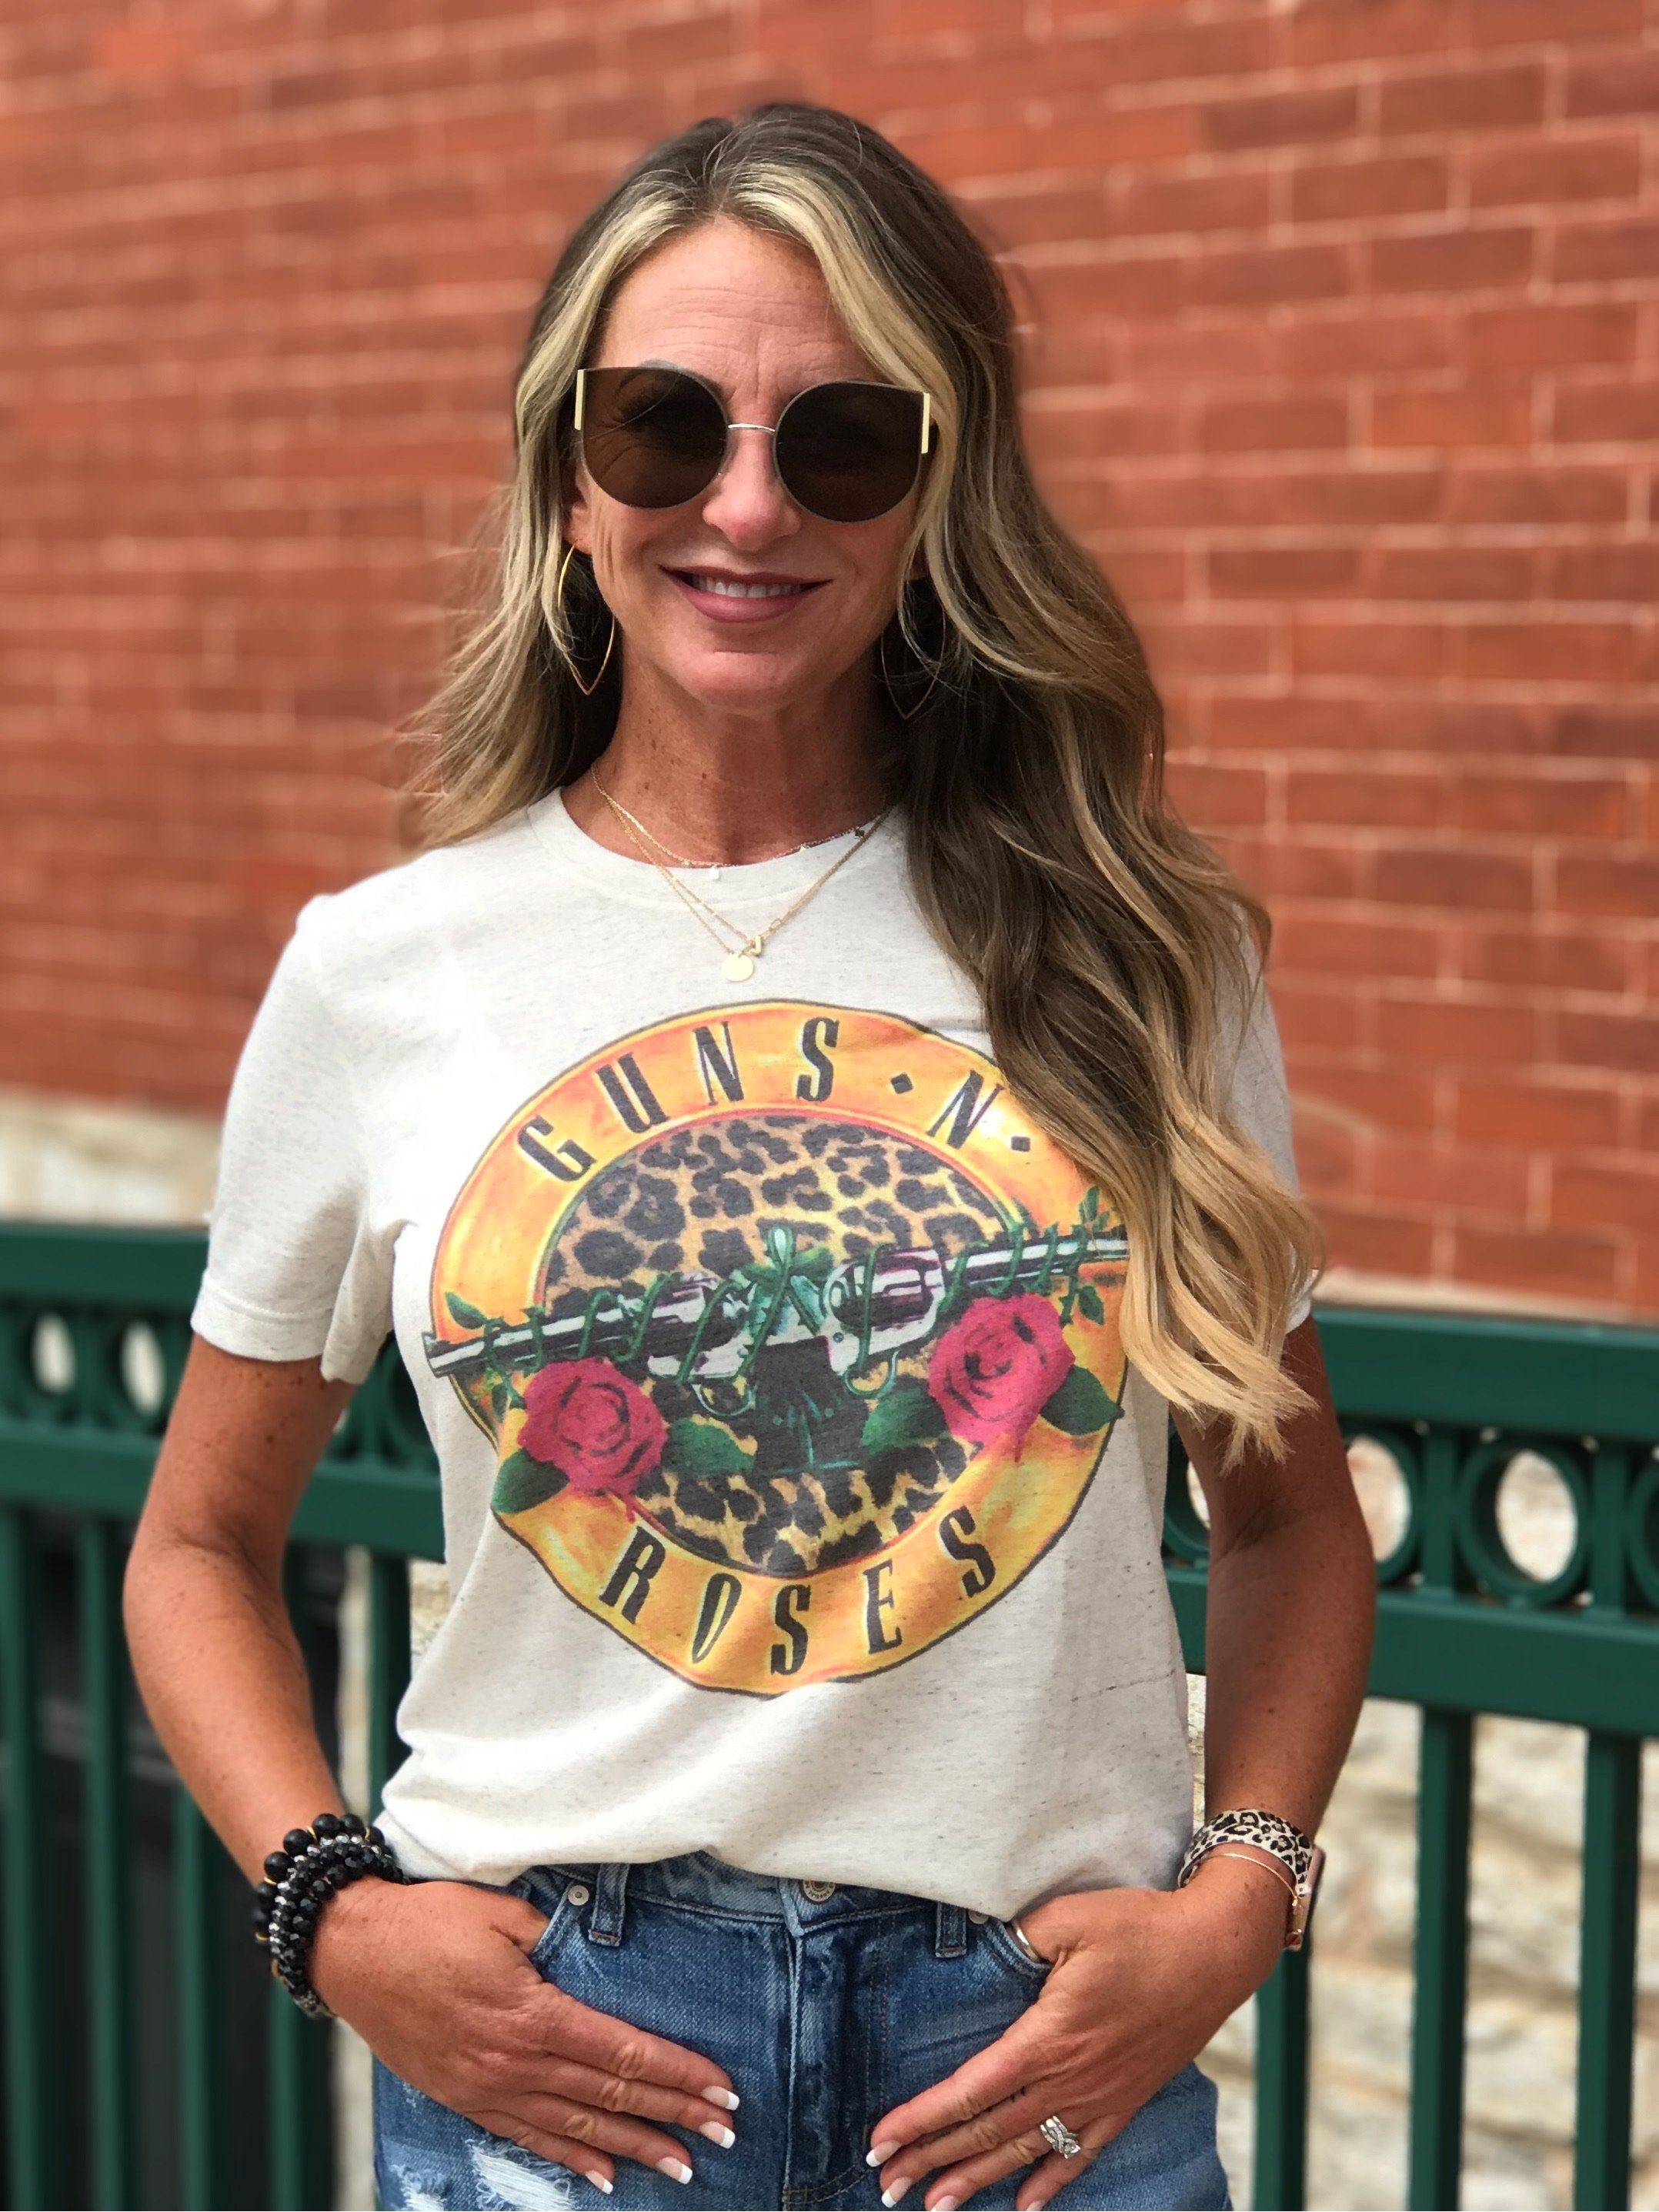 GUNS N ROSES GRAPHIC TEE